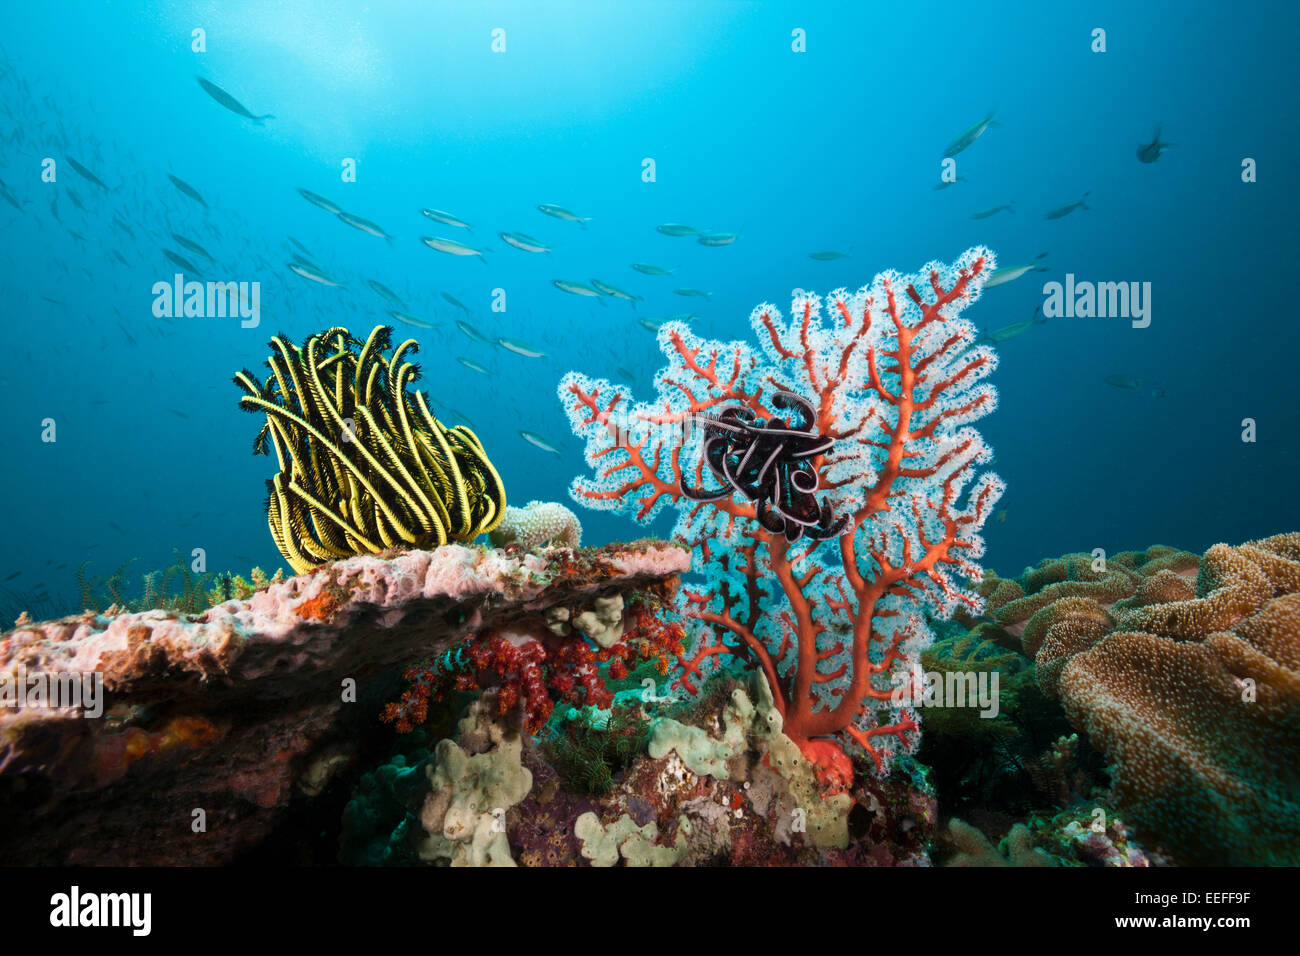 Featherstar en arrecifes de coral, Triton Bay, Papua Occidental, Indonesia Imagen De Stock